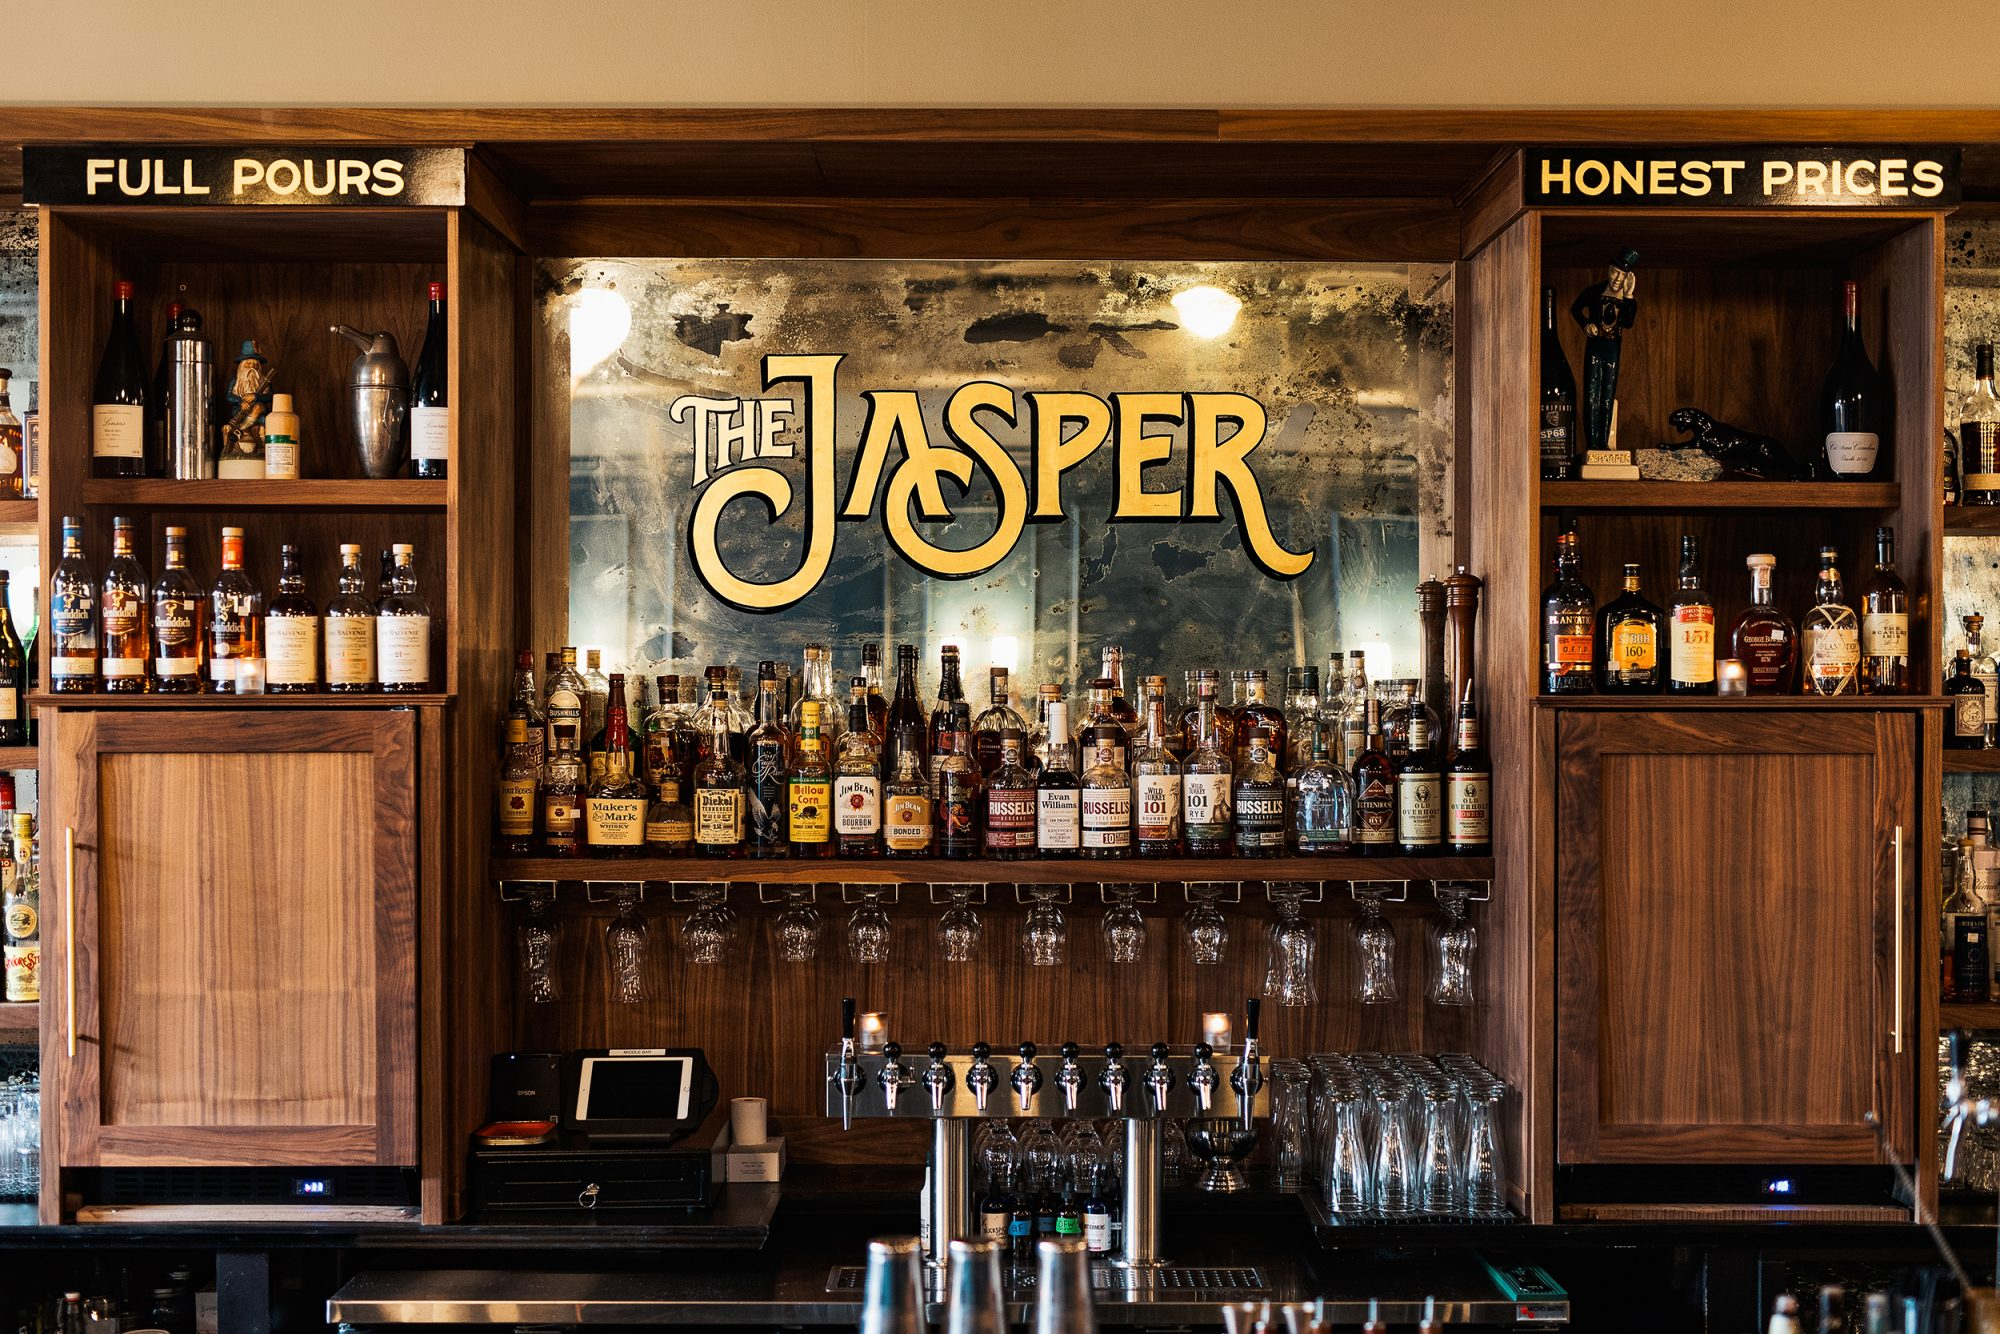 3. The Jasper (Richmond, Virginia)